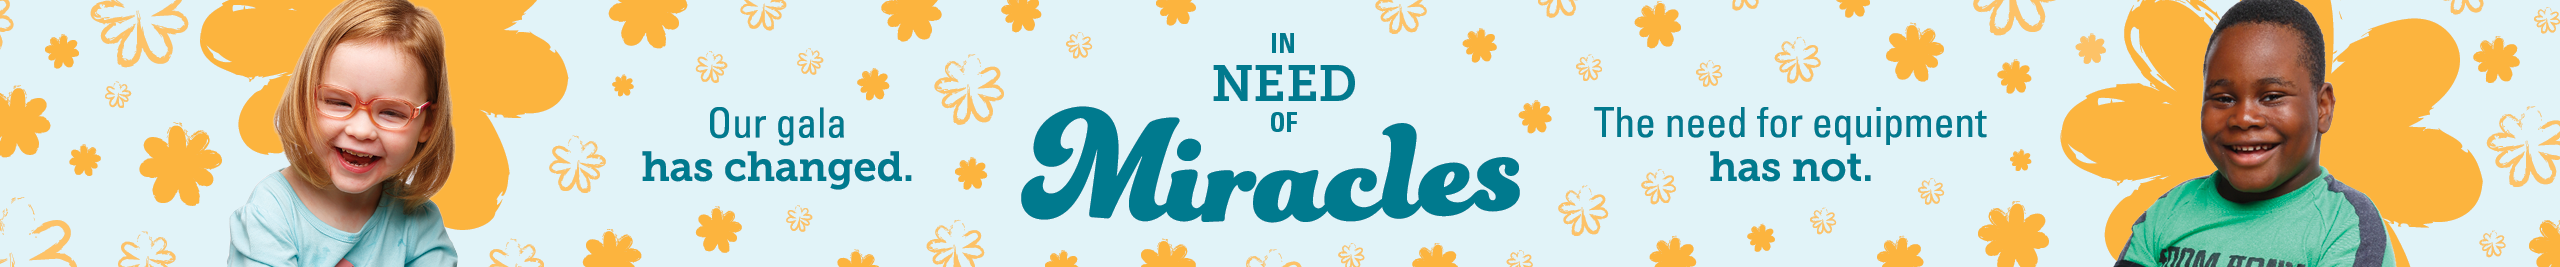 In NEED of Miracles